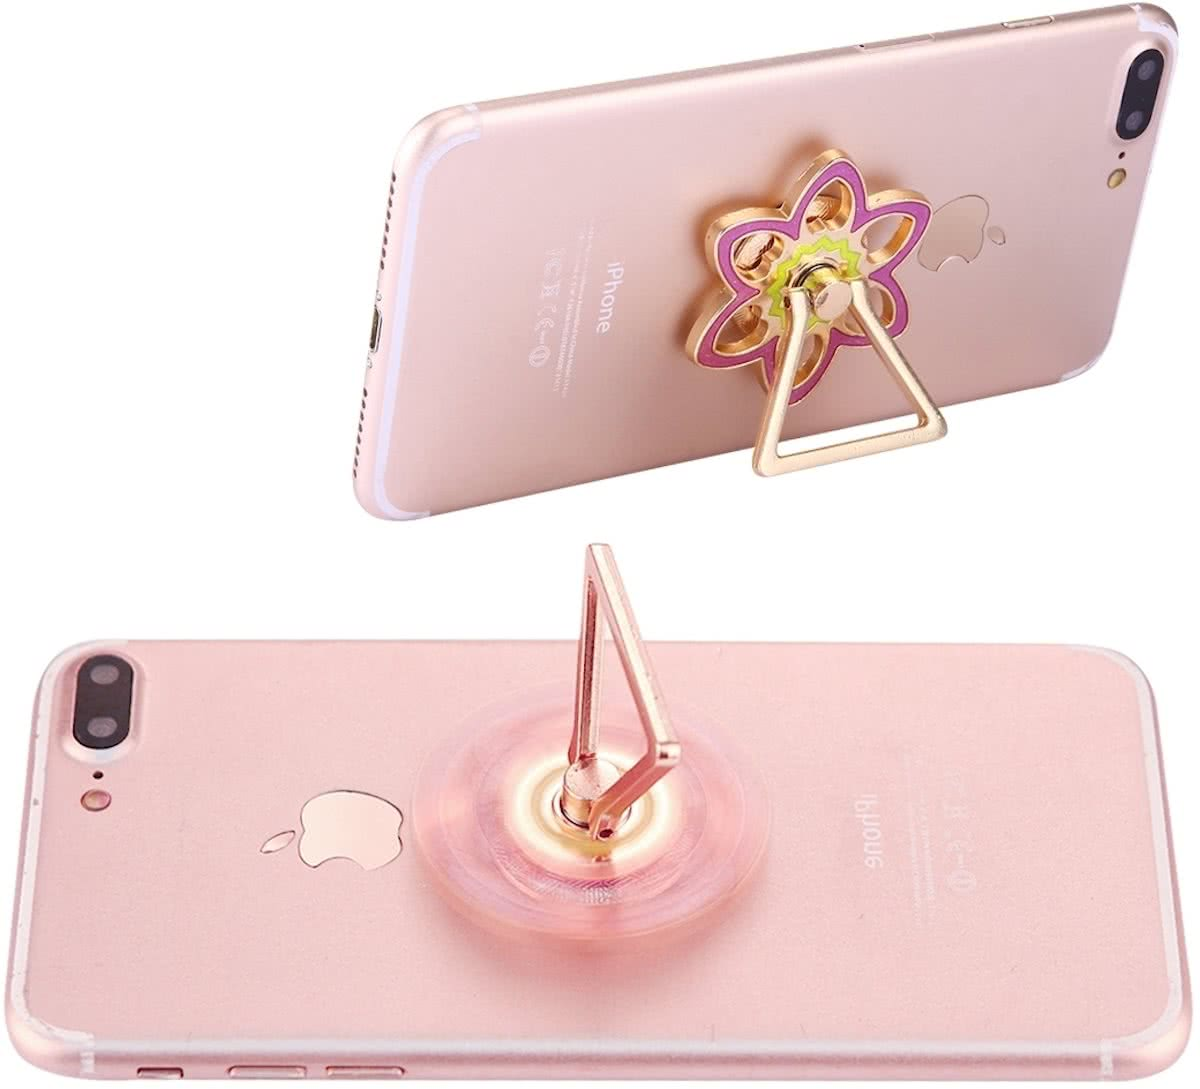 Flower Shape Phone Triangle houder   Spinner Toy Stress rooducer Anti-Anxiety Toy, About 0.2 Minutes Rotation Time(roze)